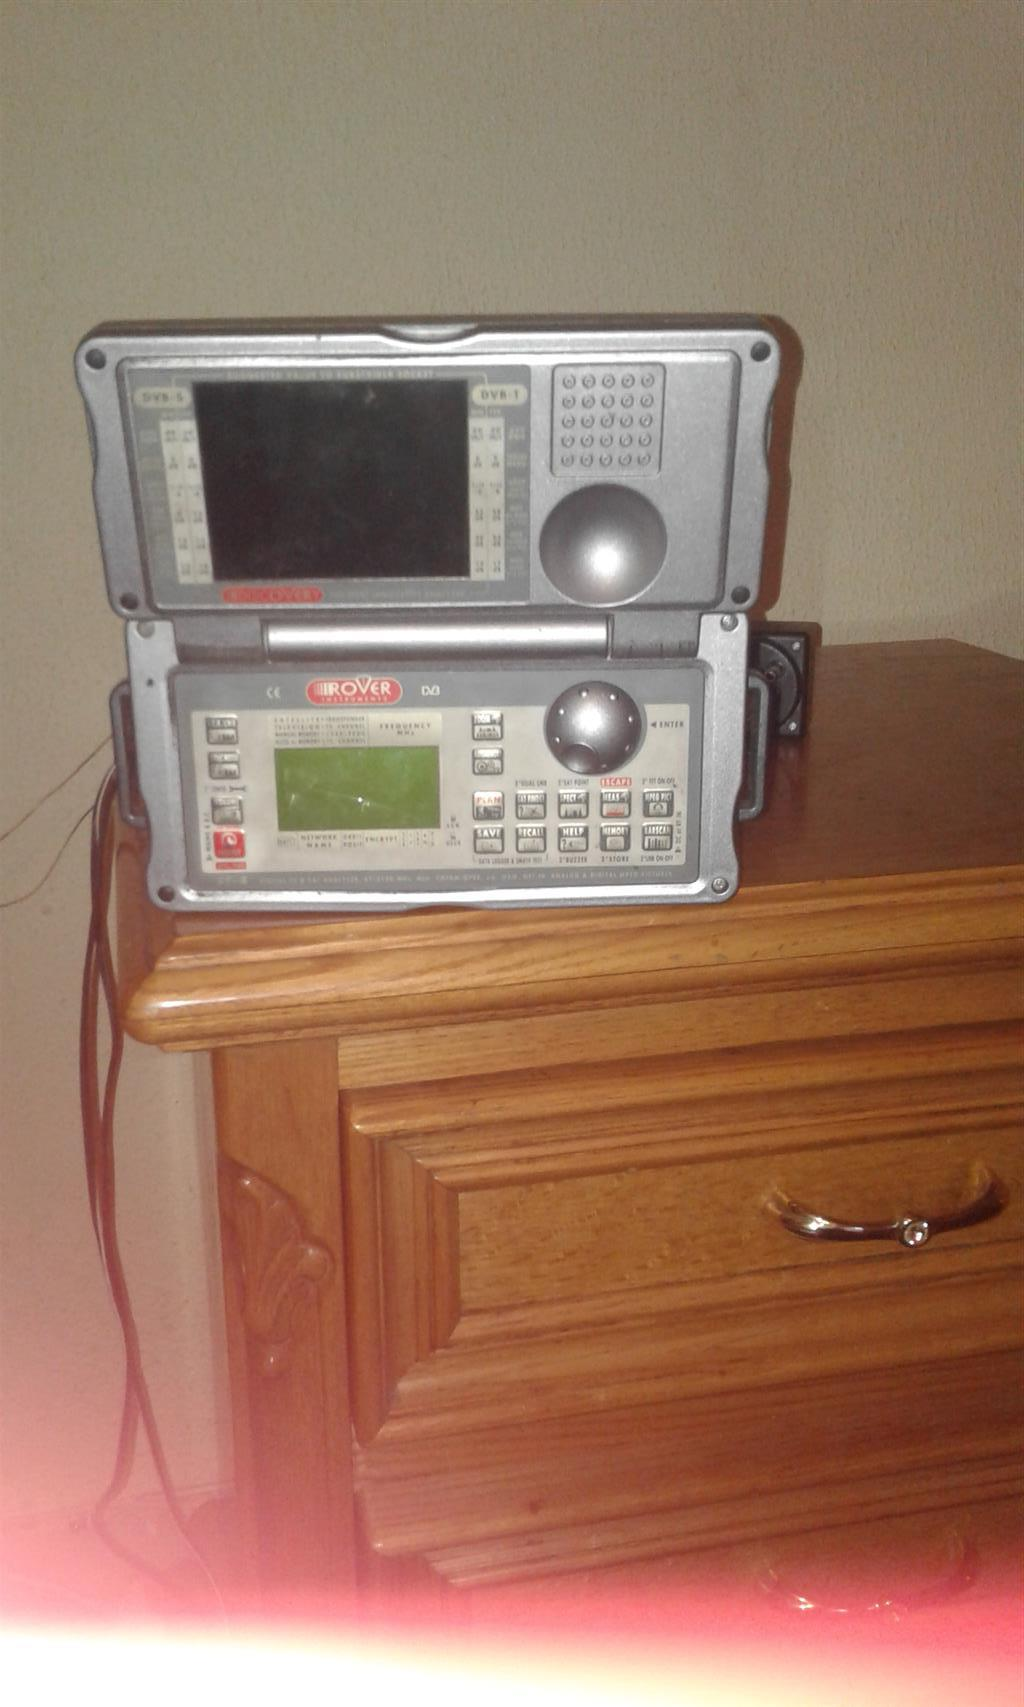 Rover instruments DBV ST-4 Digital tv and Sat